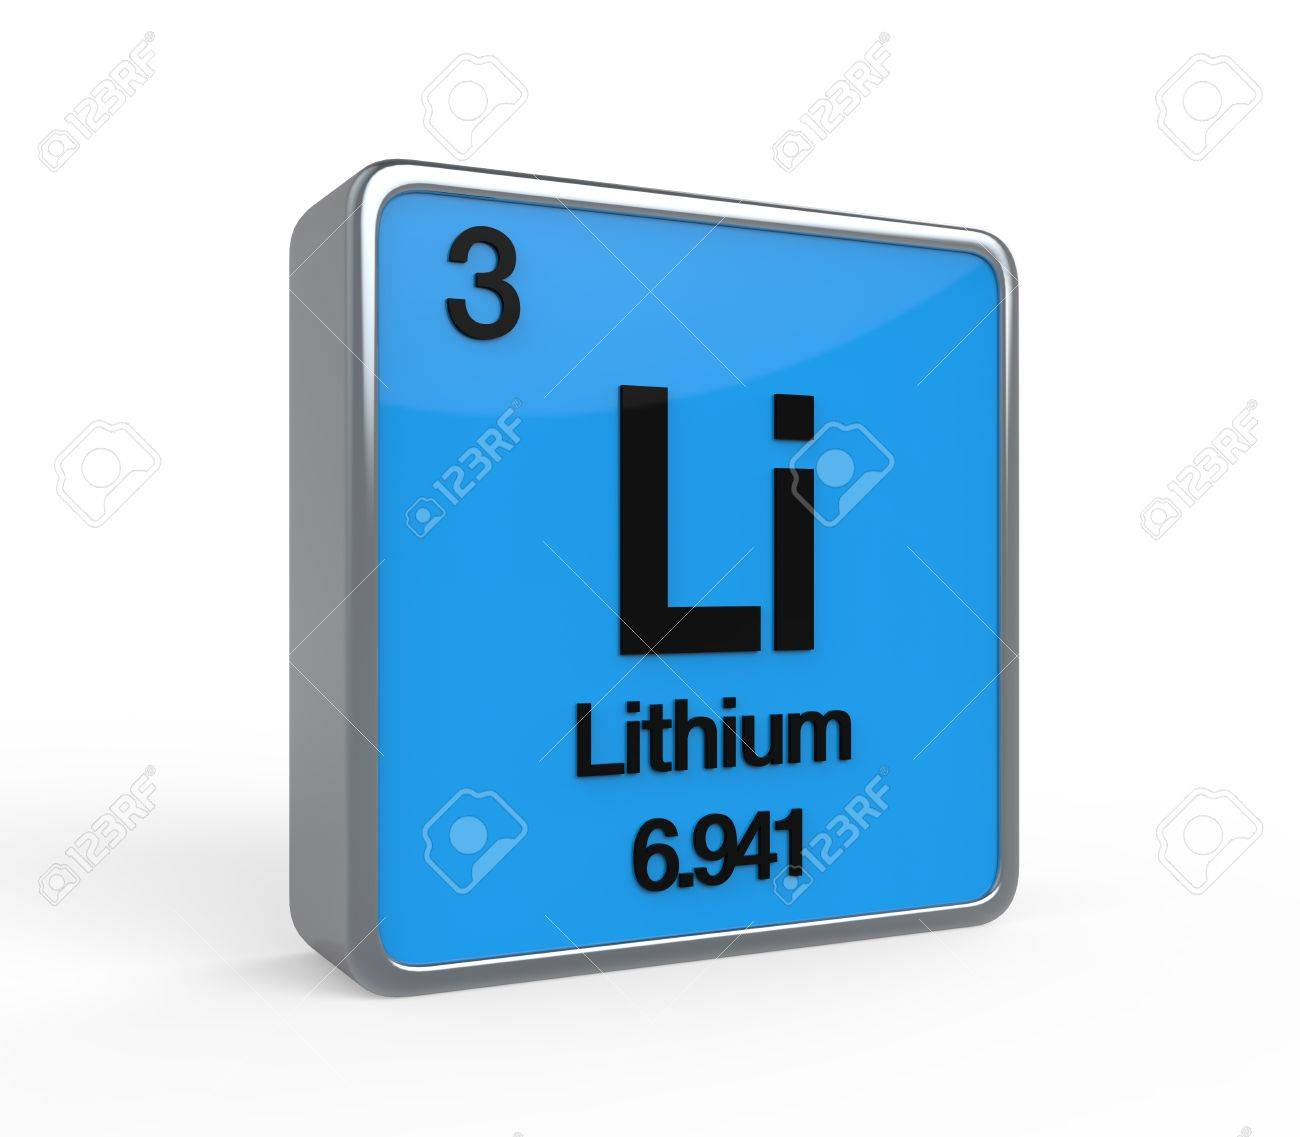 Lithium element periodic table stock photo picture and royalty free lithium element periodic table stock photo 20429781 urtaz Choice Image